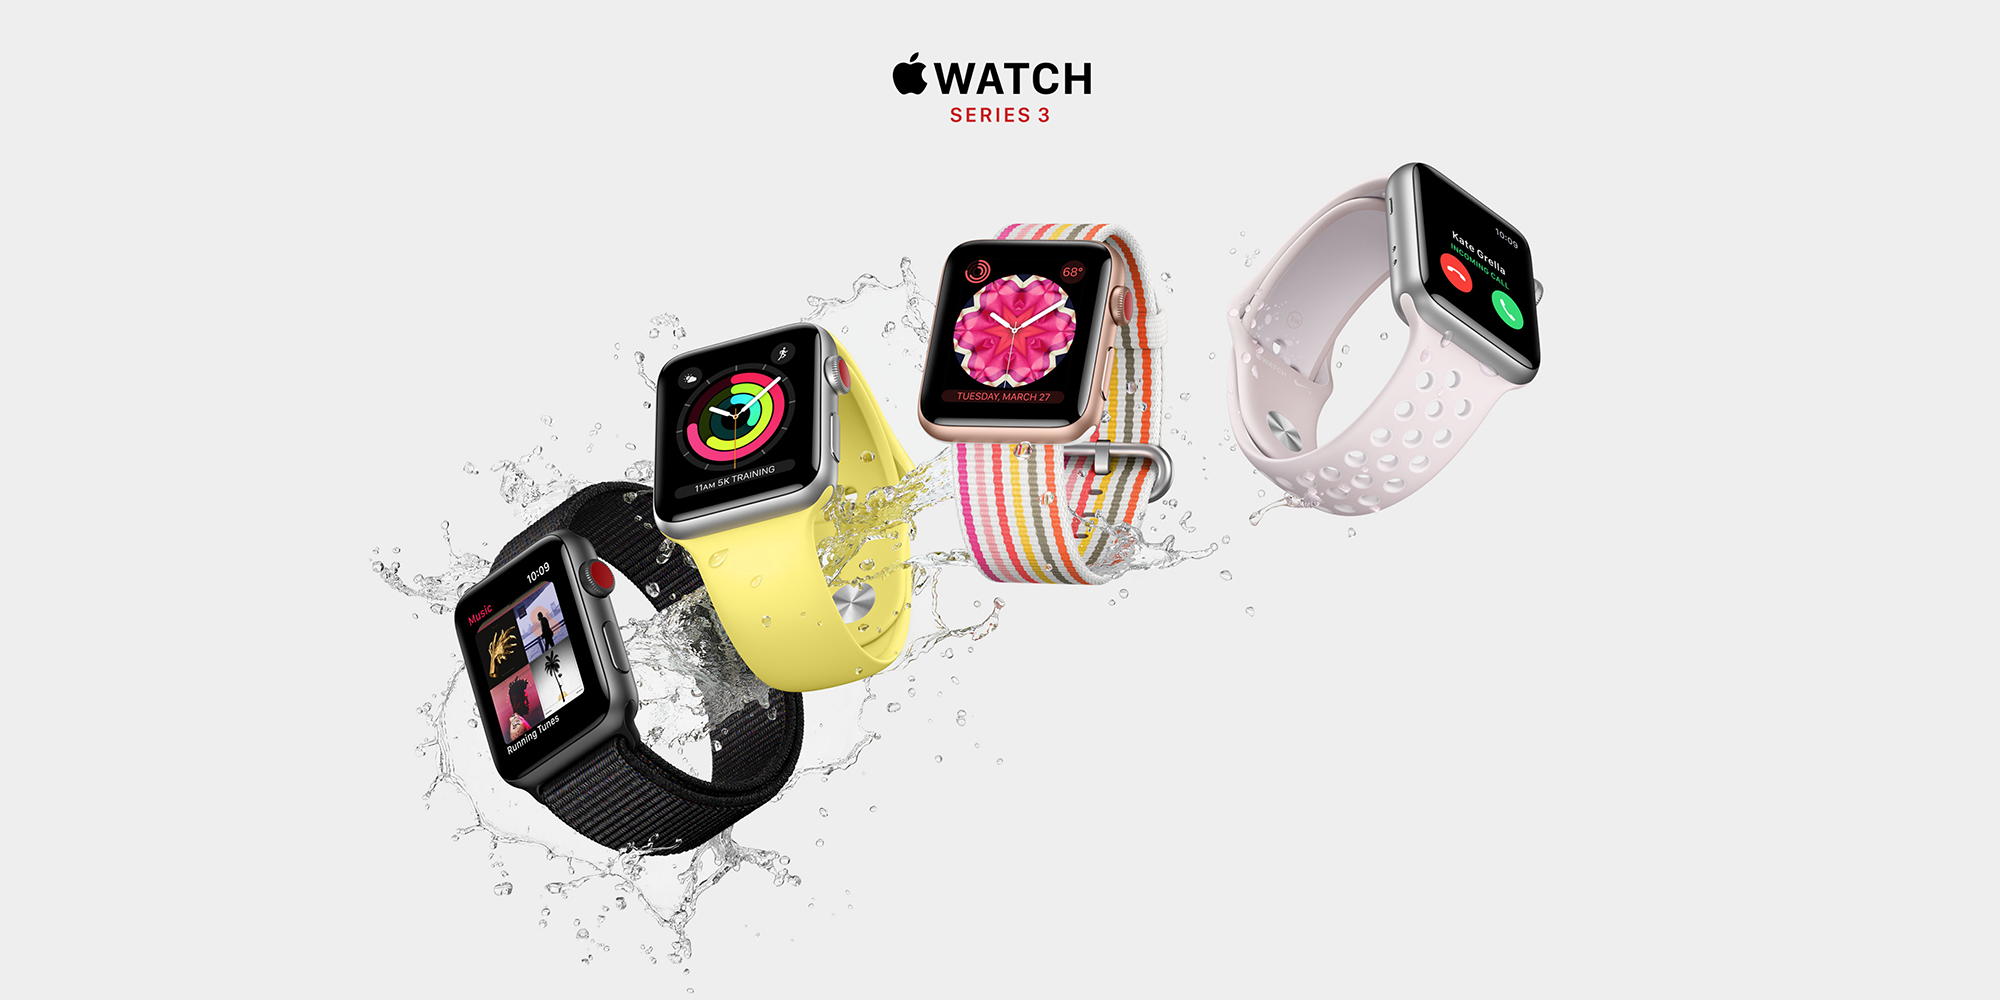 Fresh Apple Watch Series 3 LTE deals start at $259 via B&H (tax savings in select states)